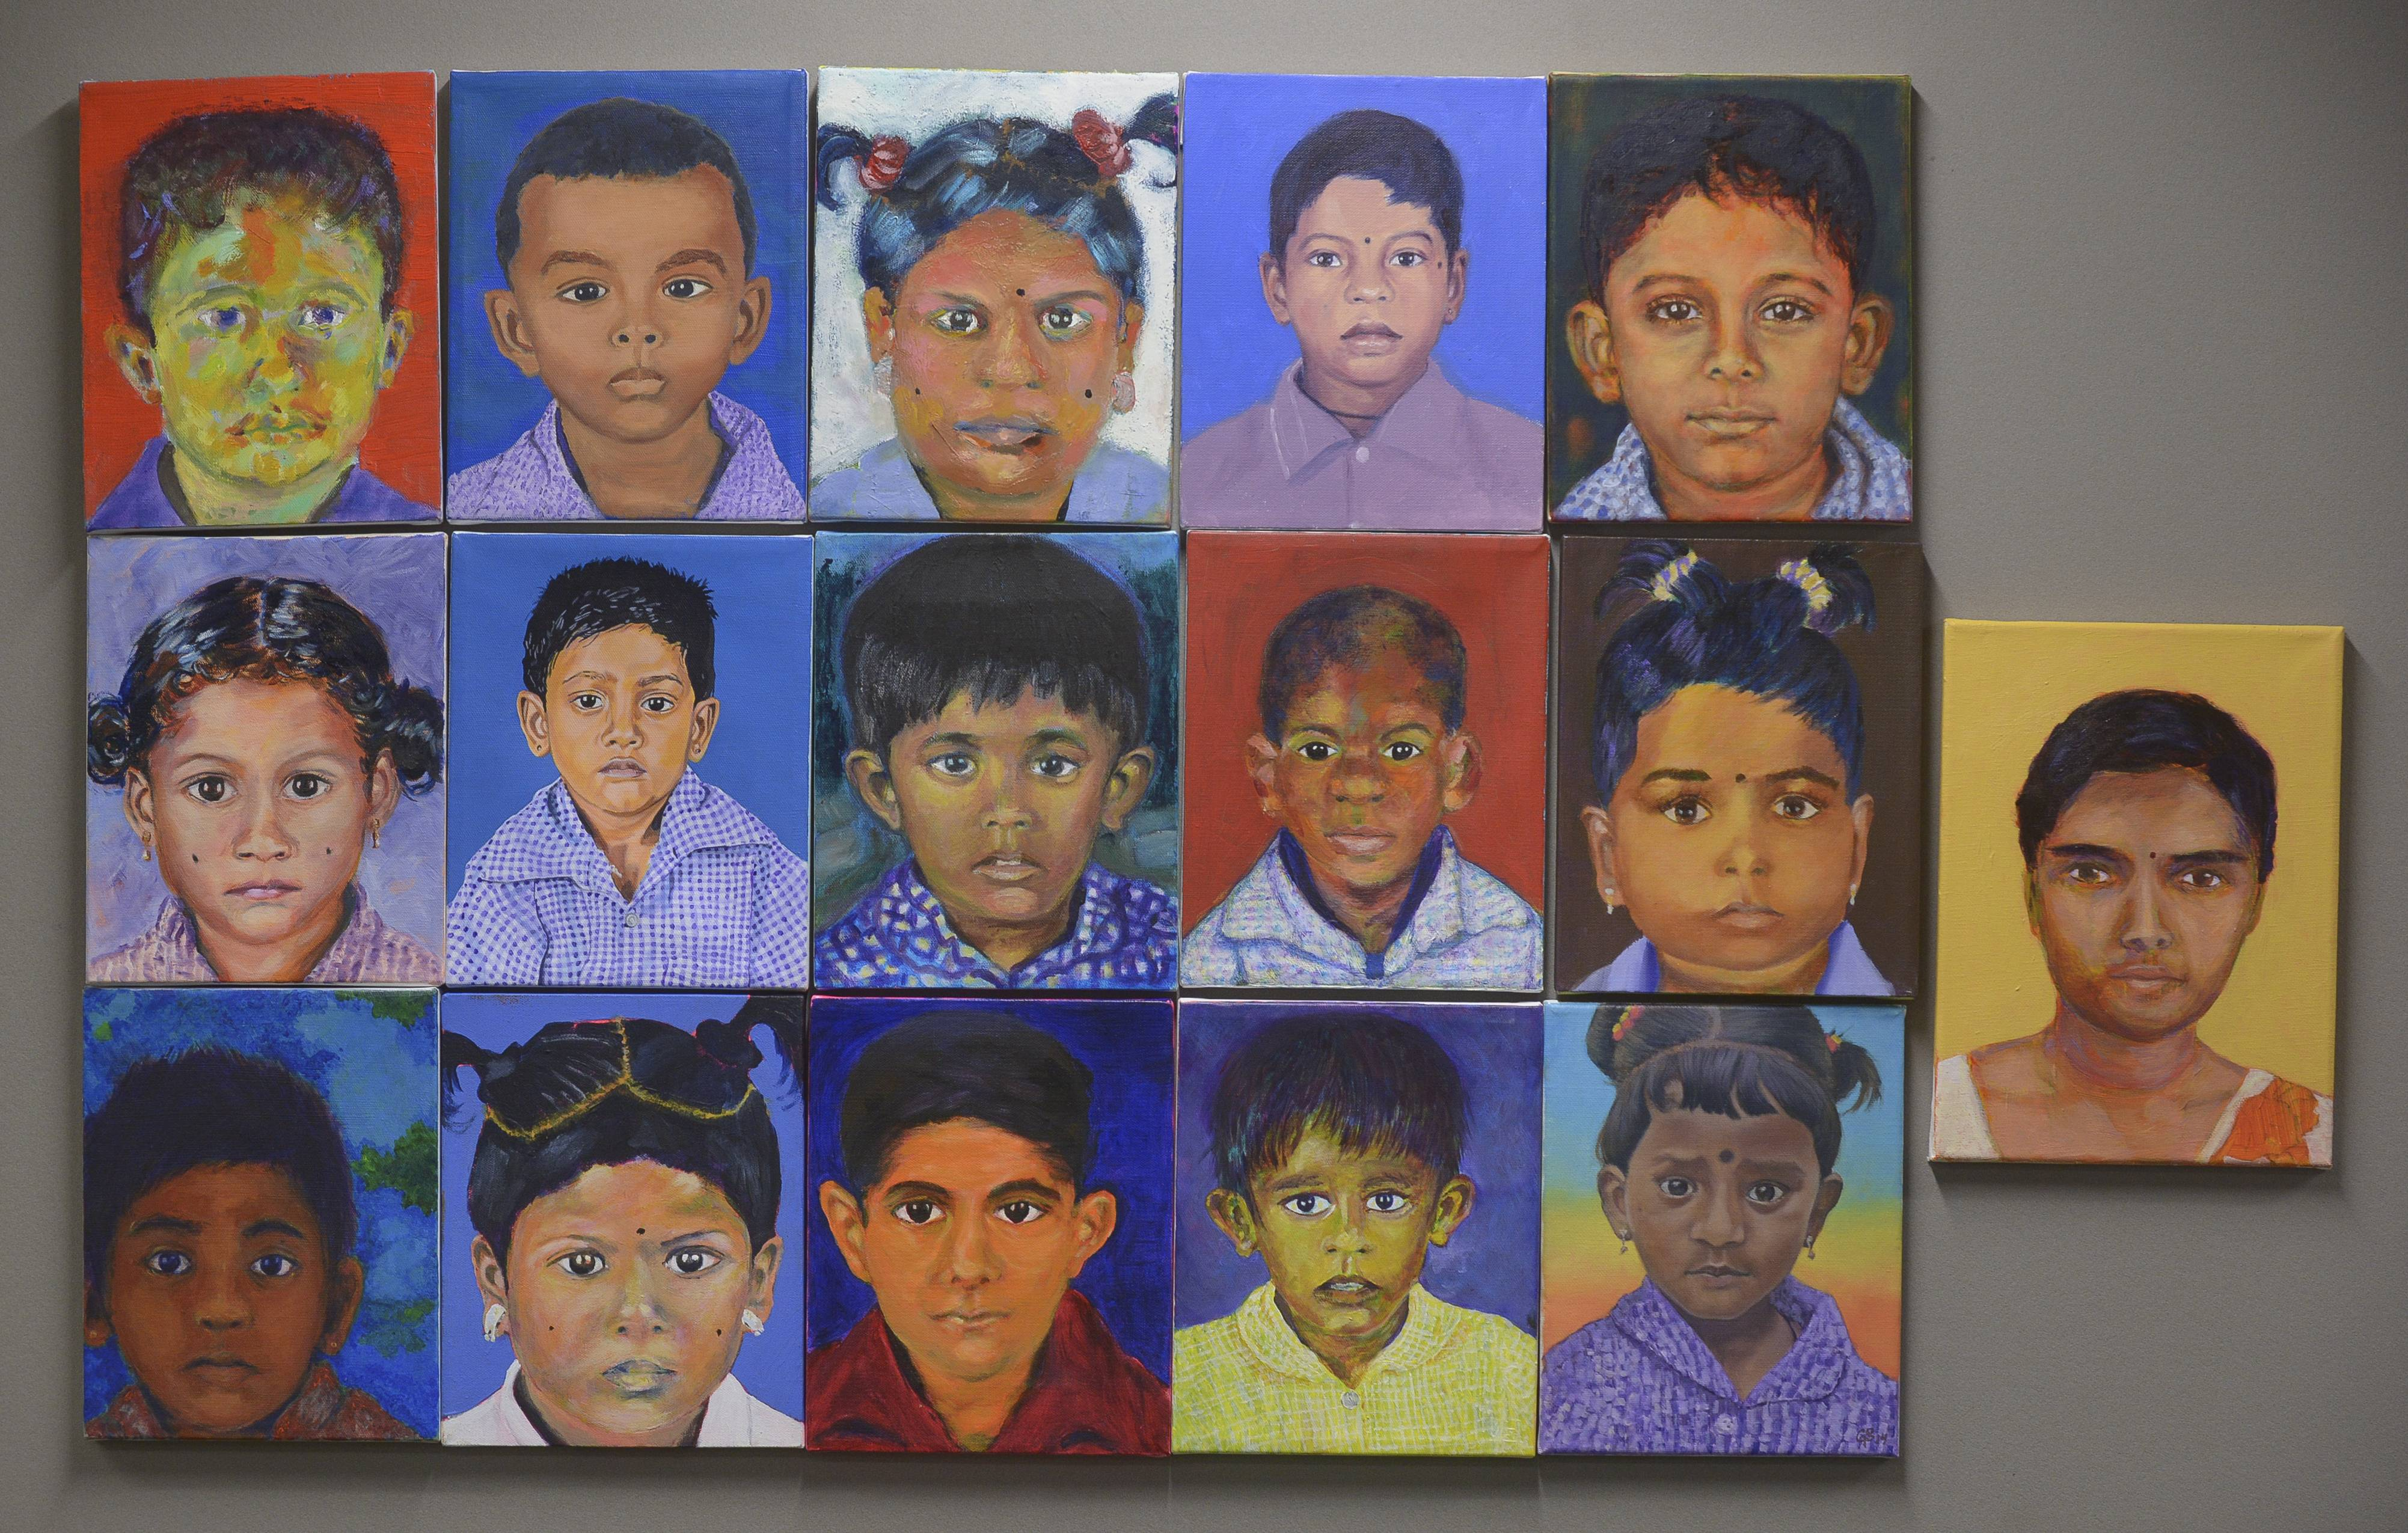 Portraits of Sri Lankan children created by Jennifer Hereth's painting students at College of DuPage.